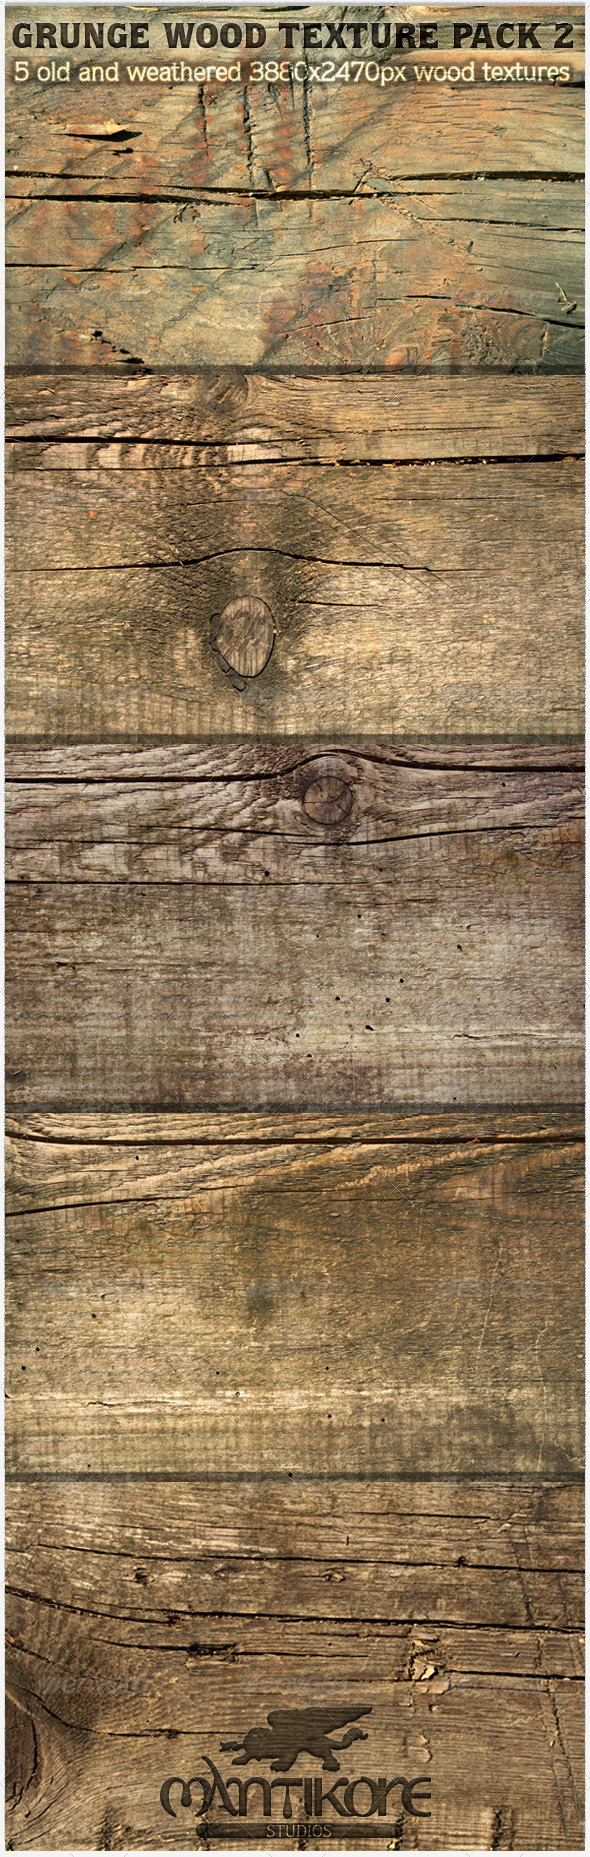 GraphicRiver Grunge Wood Texture Pack 2 5474826